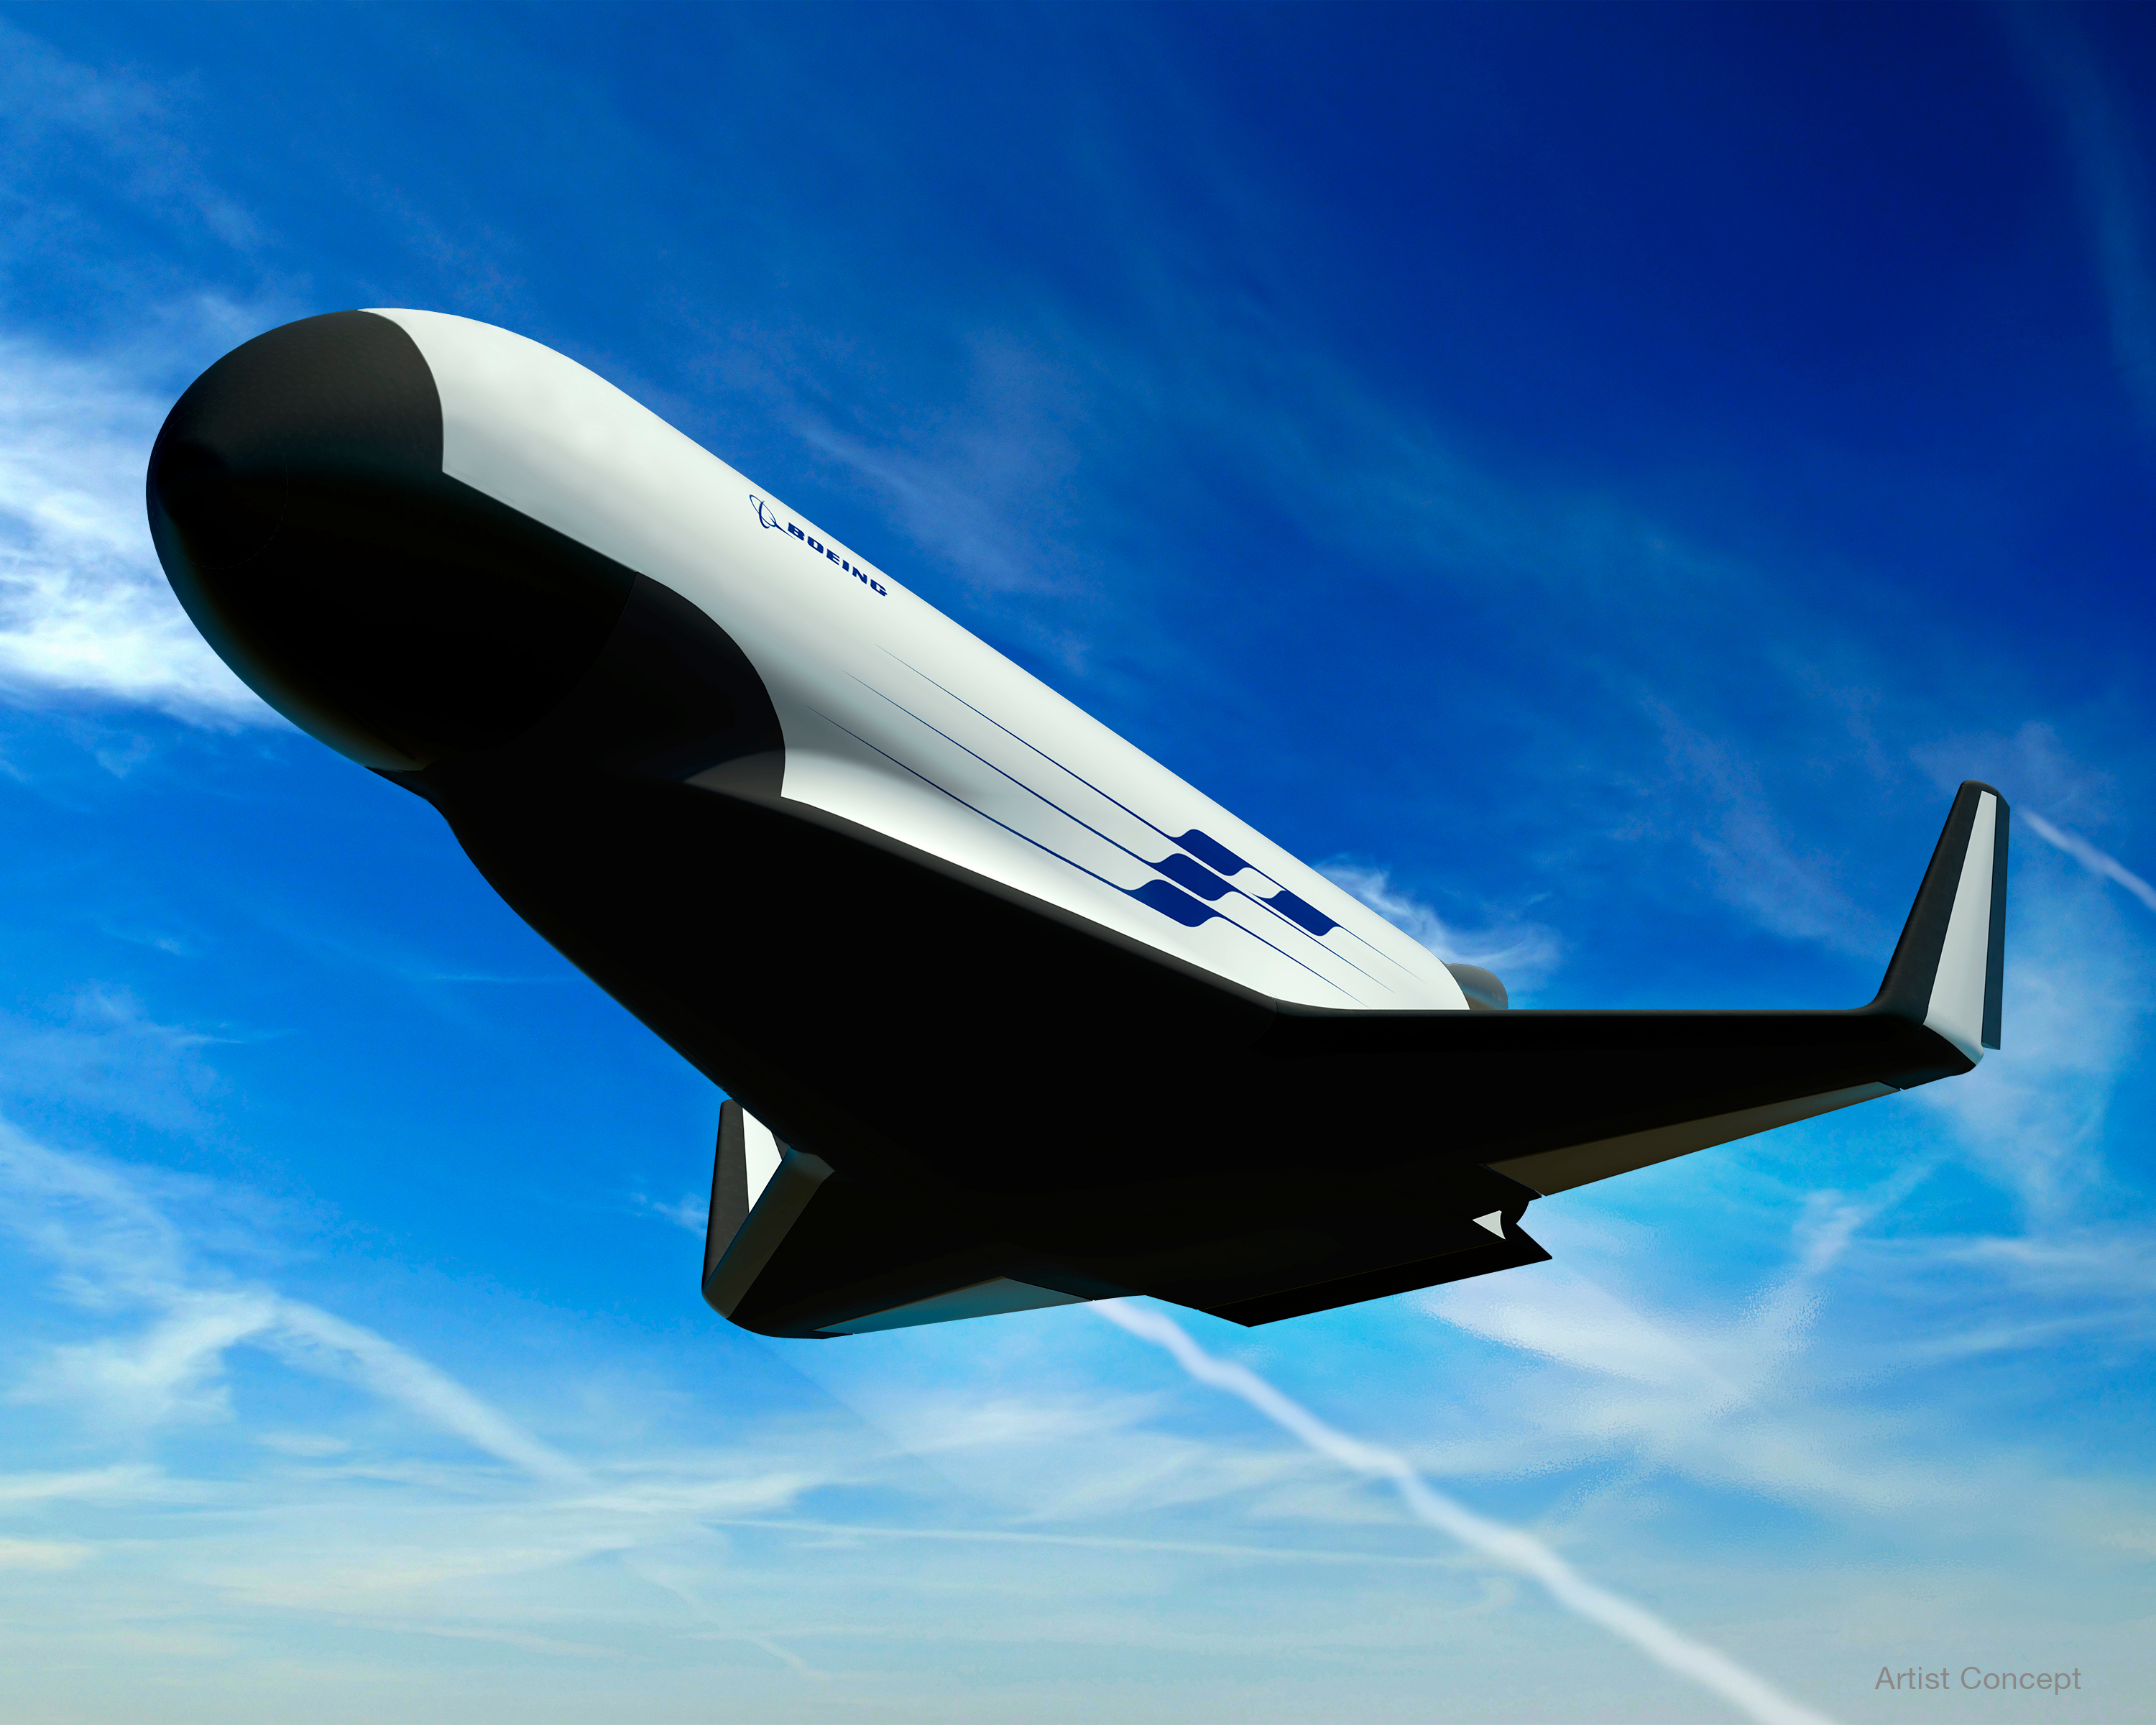 XS-1 Space Plane: Boeing Illustration